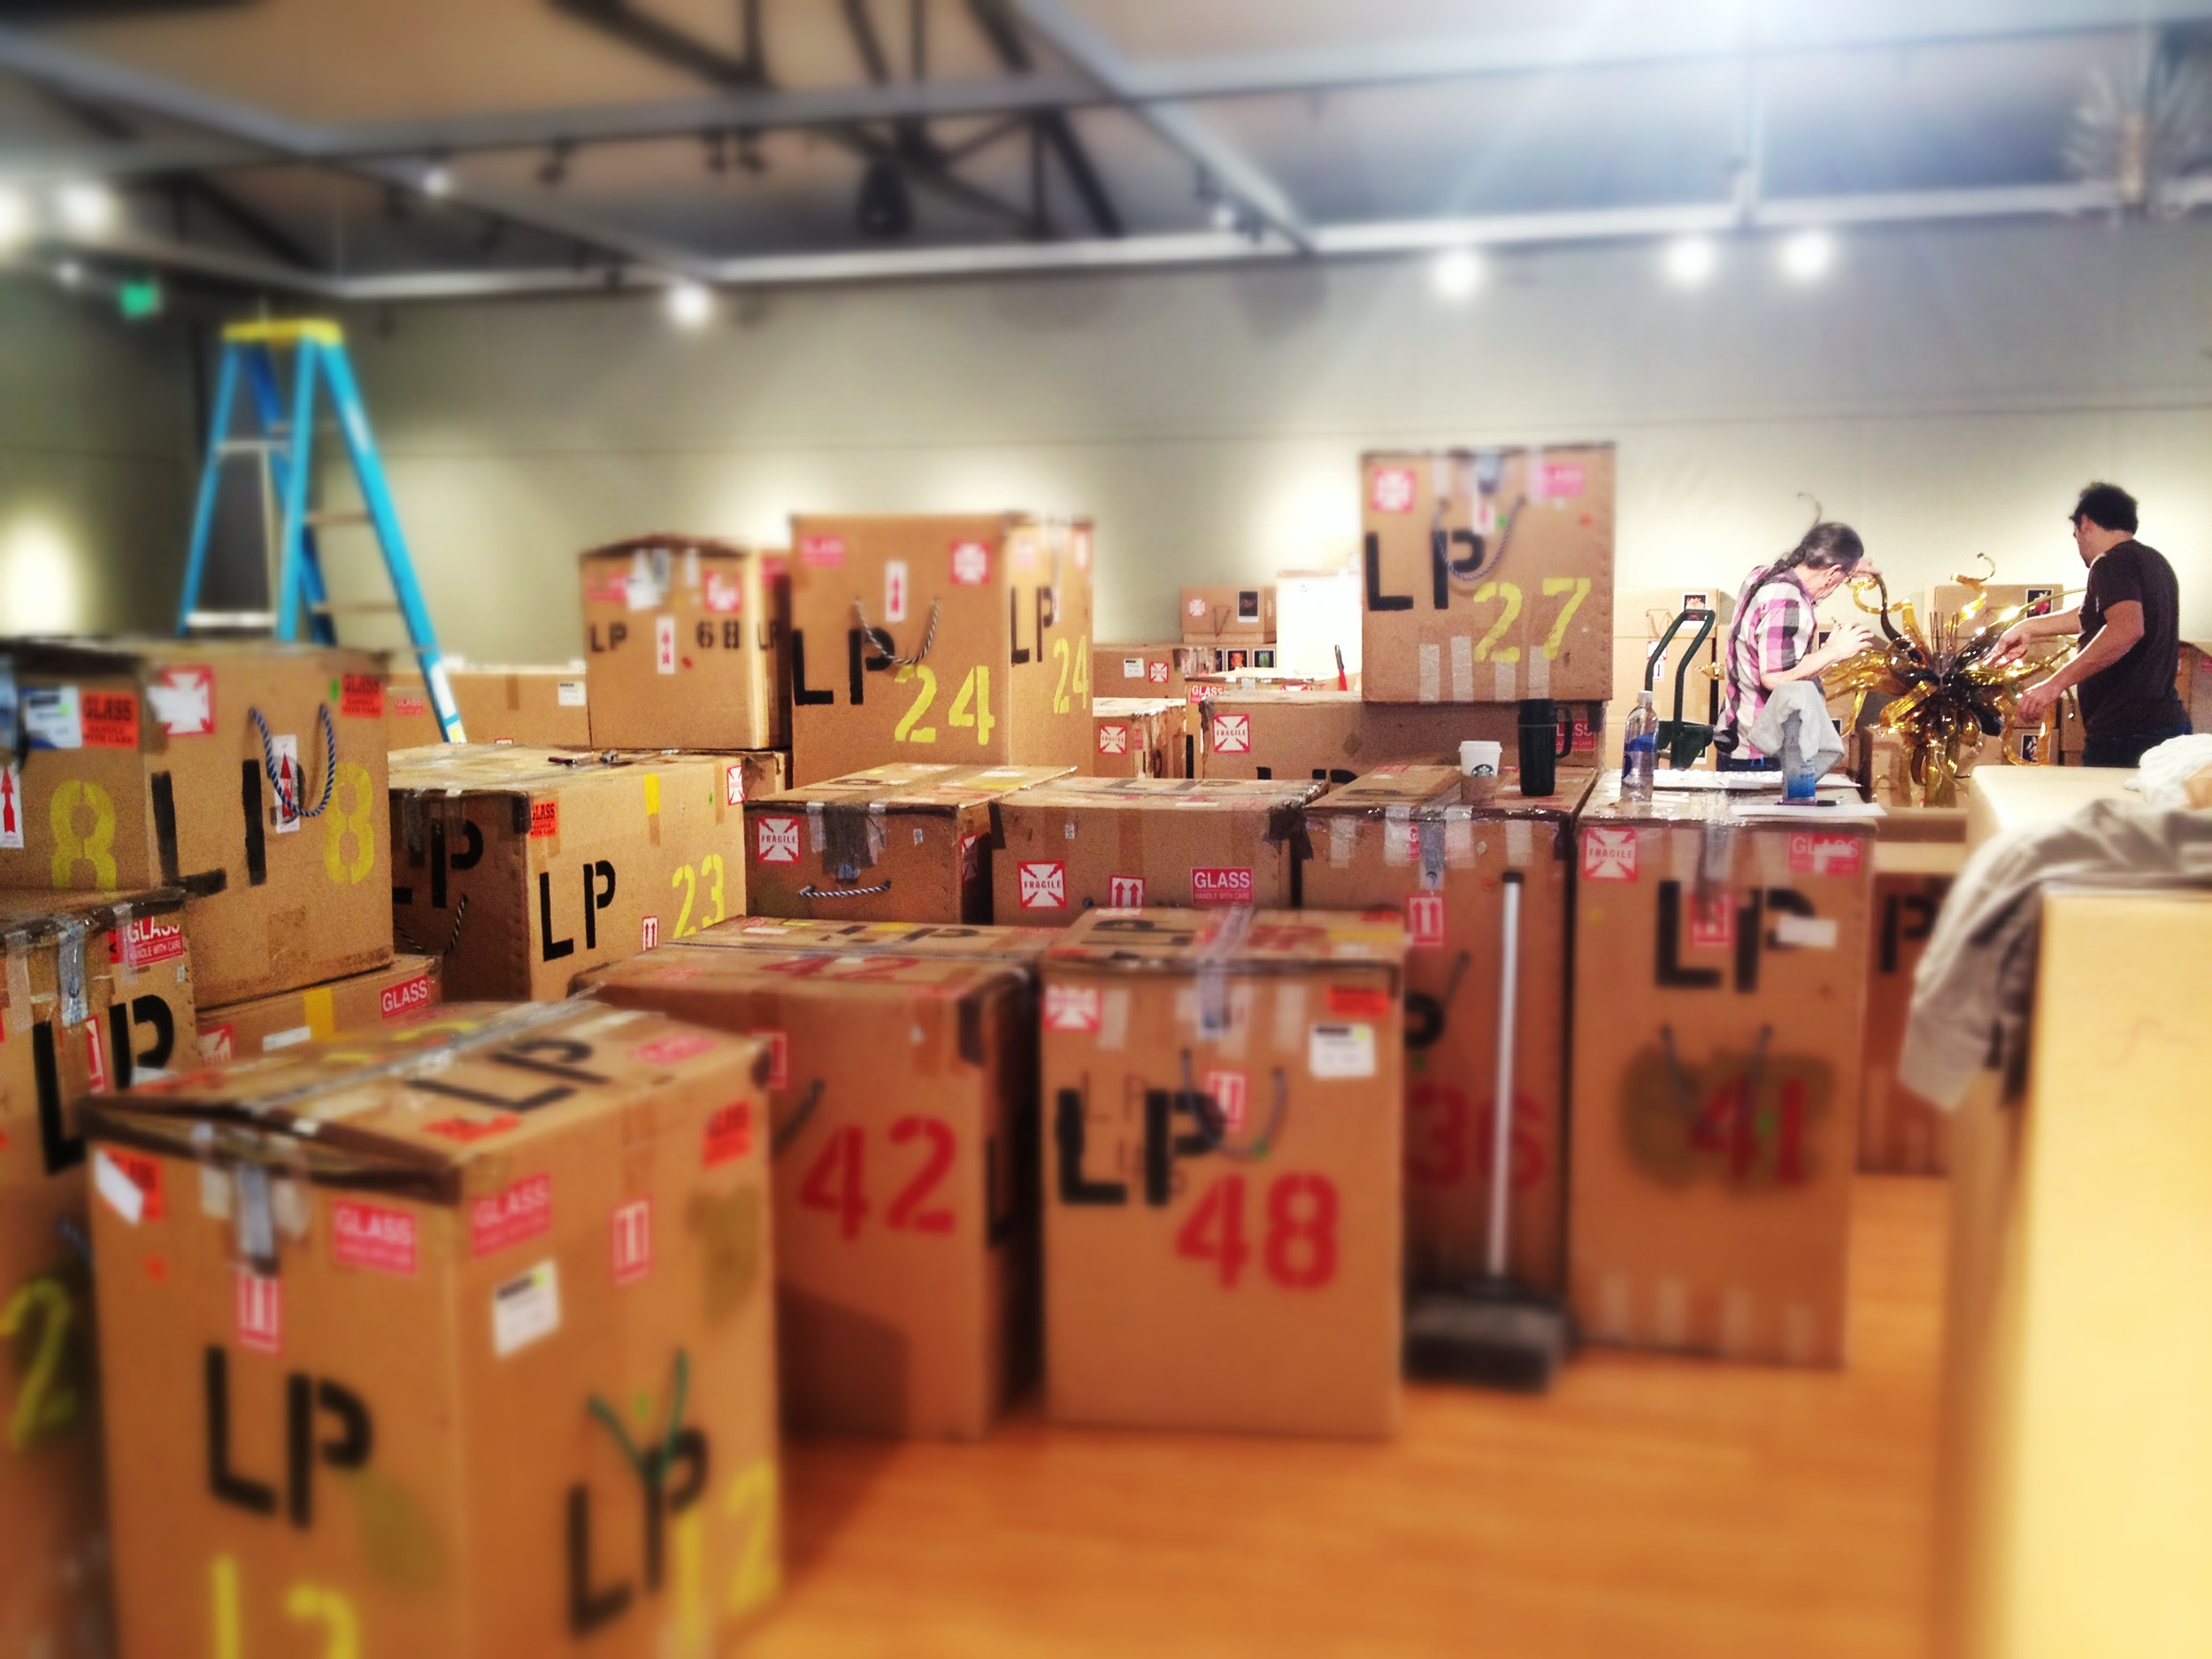 Denny Park unloading boxes for the Chihuly Exhibition at the Kimball   Art Center.